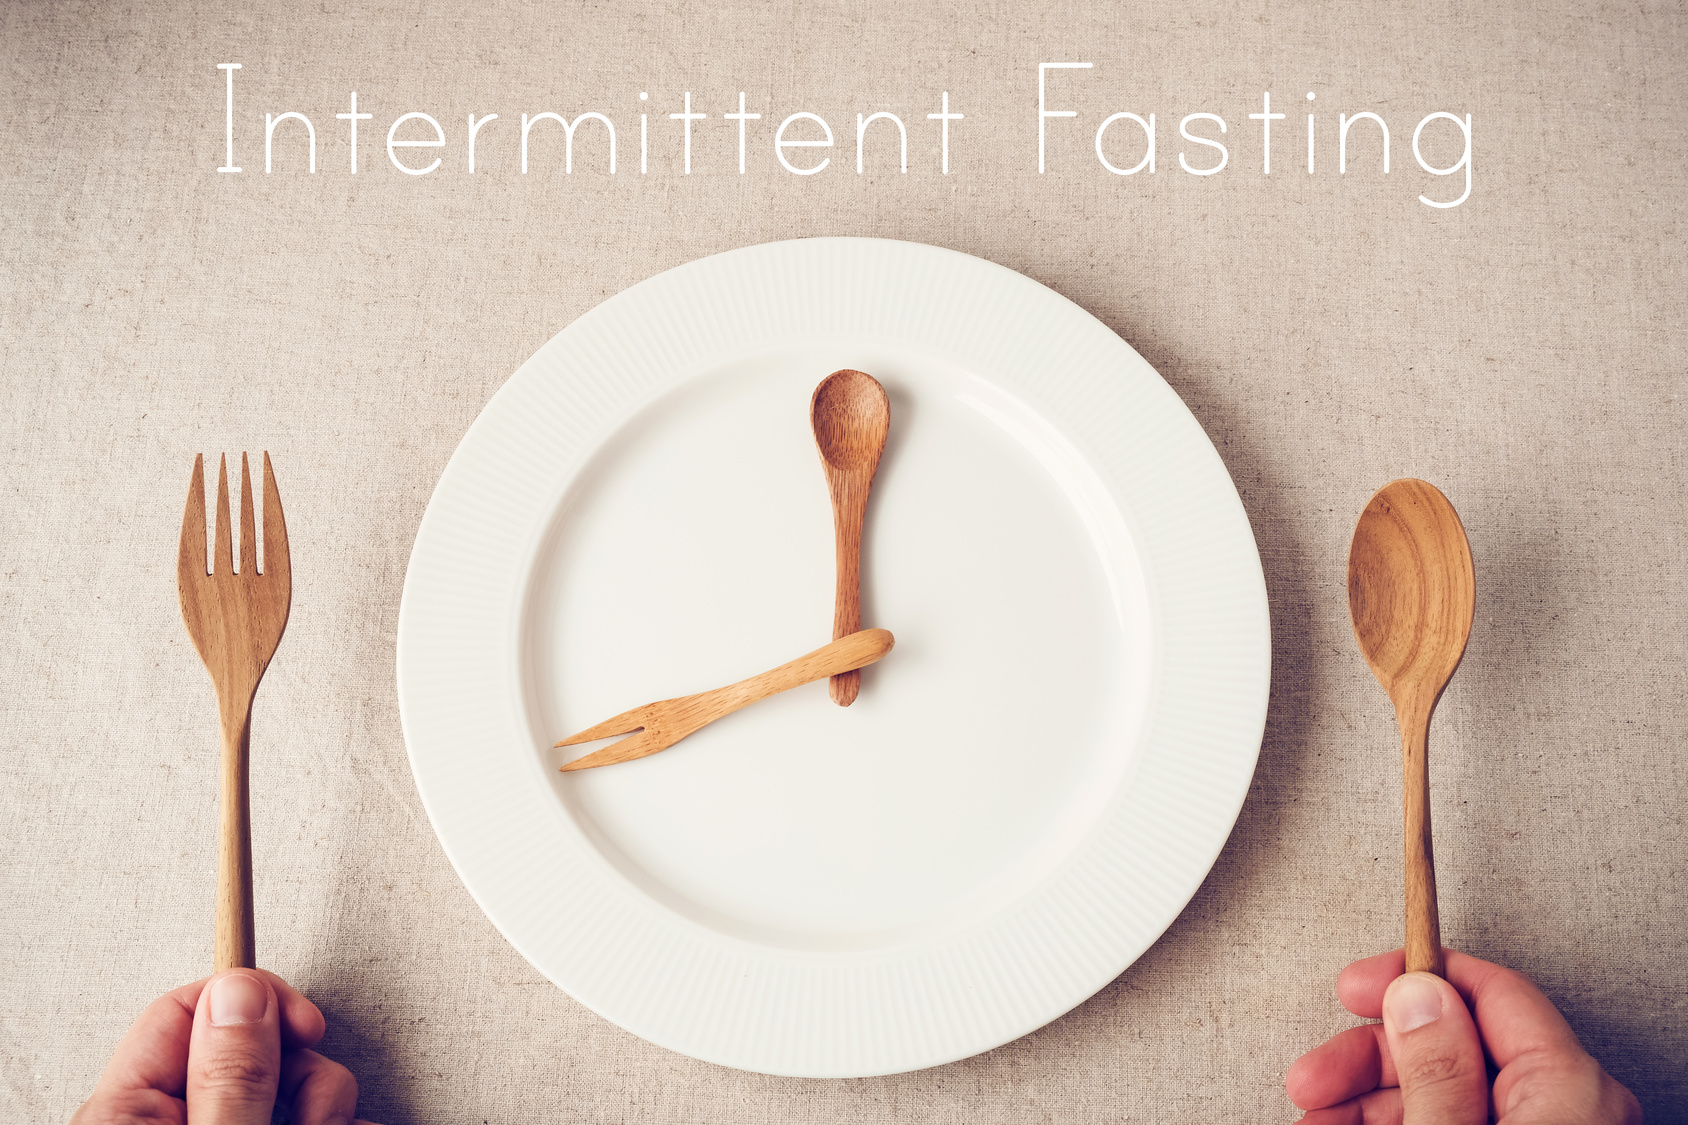 Intermittent Fasting – The Good, The Bad And The Ugly